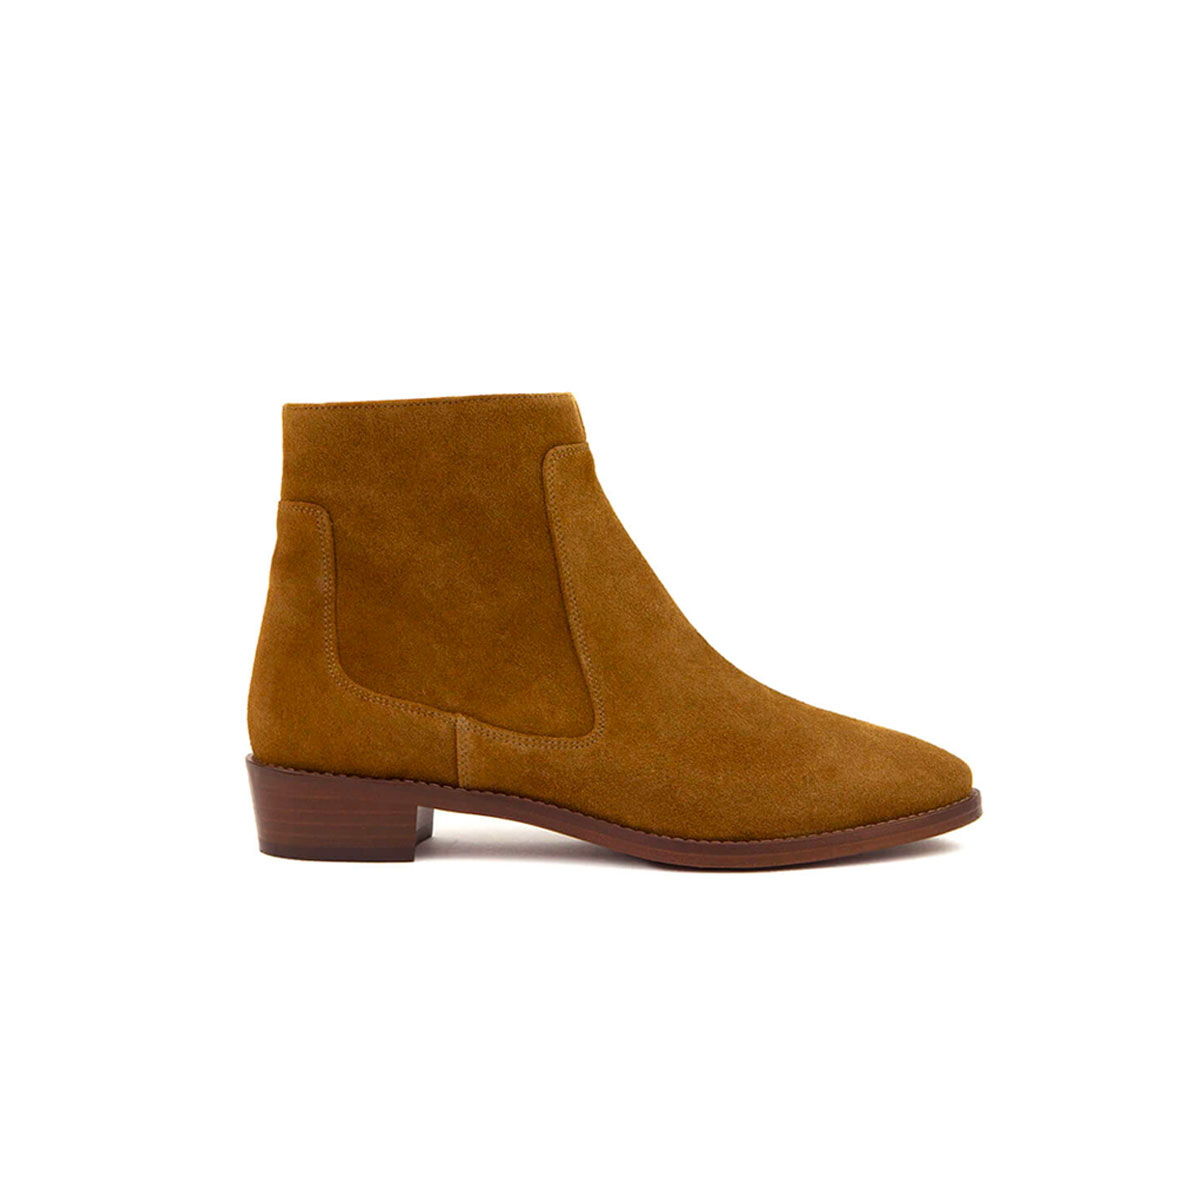 Bottines n°67 Ecorce